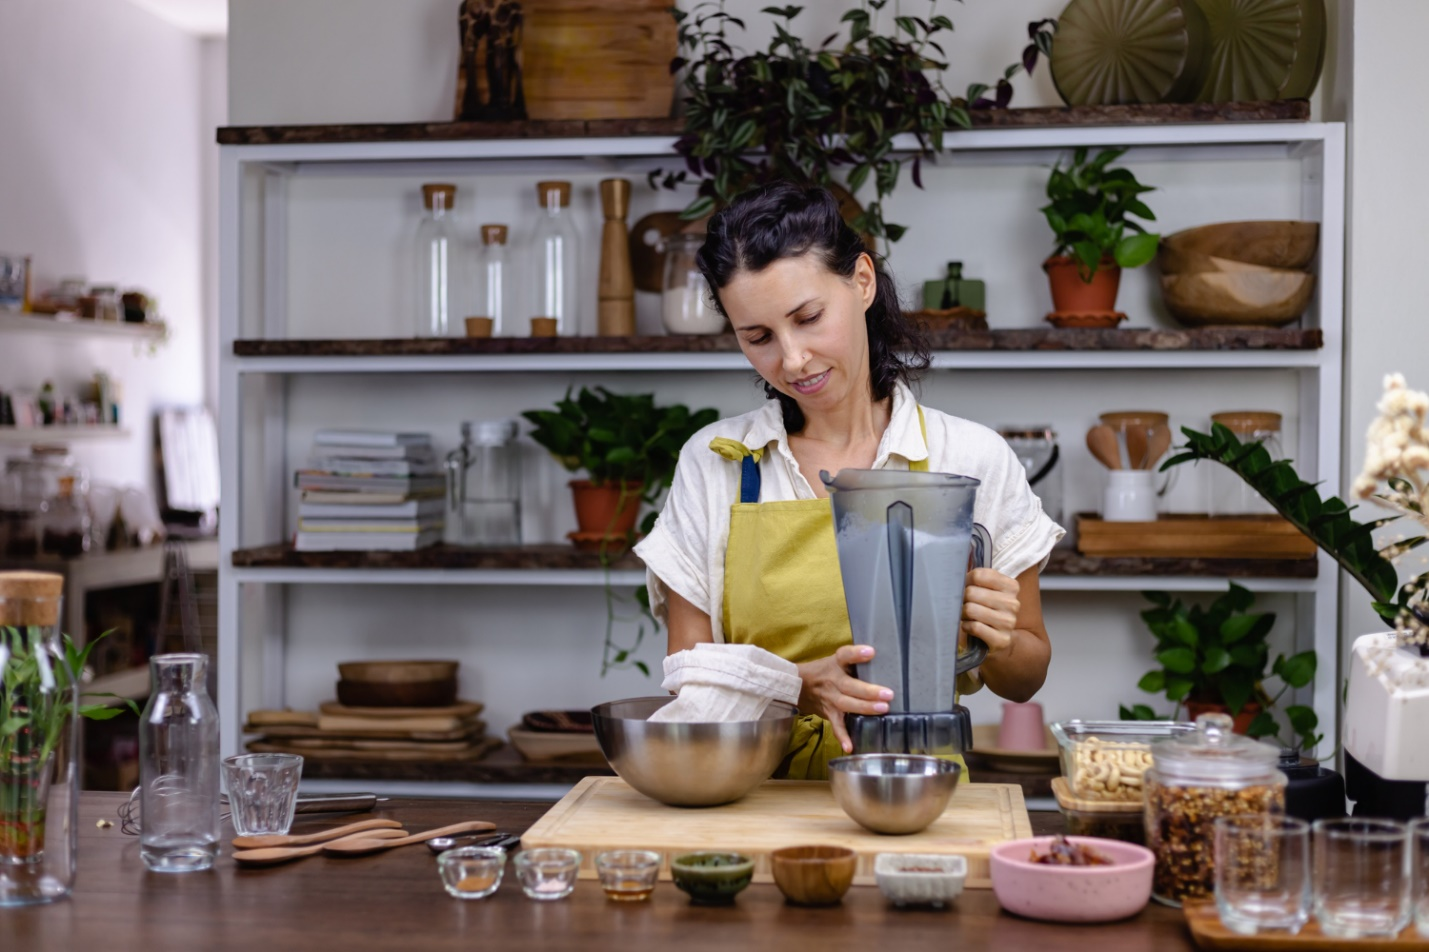 C:\Users\Dell\Downloads\woman-kitchen-with-chia-pudding-making-process.jpg